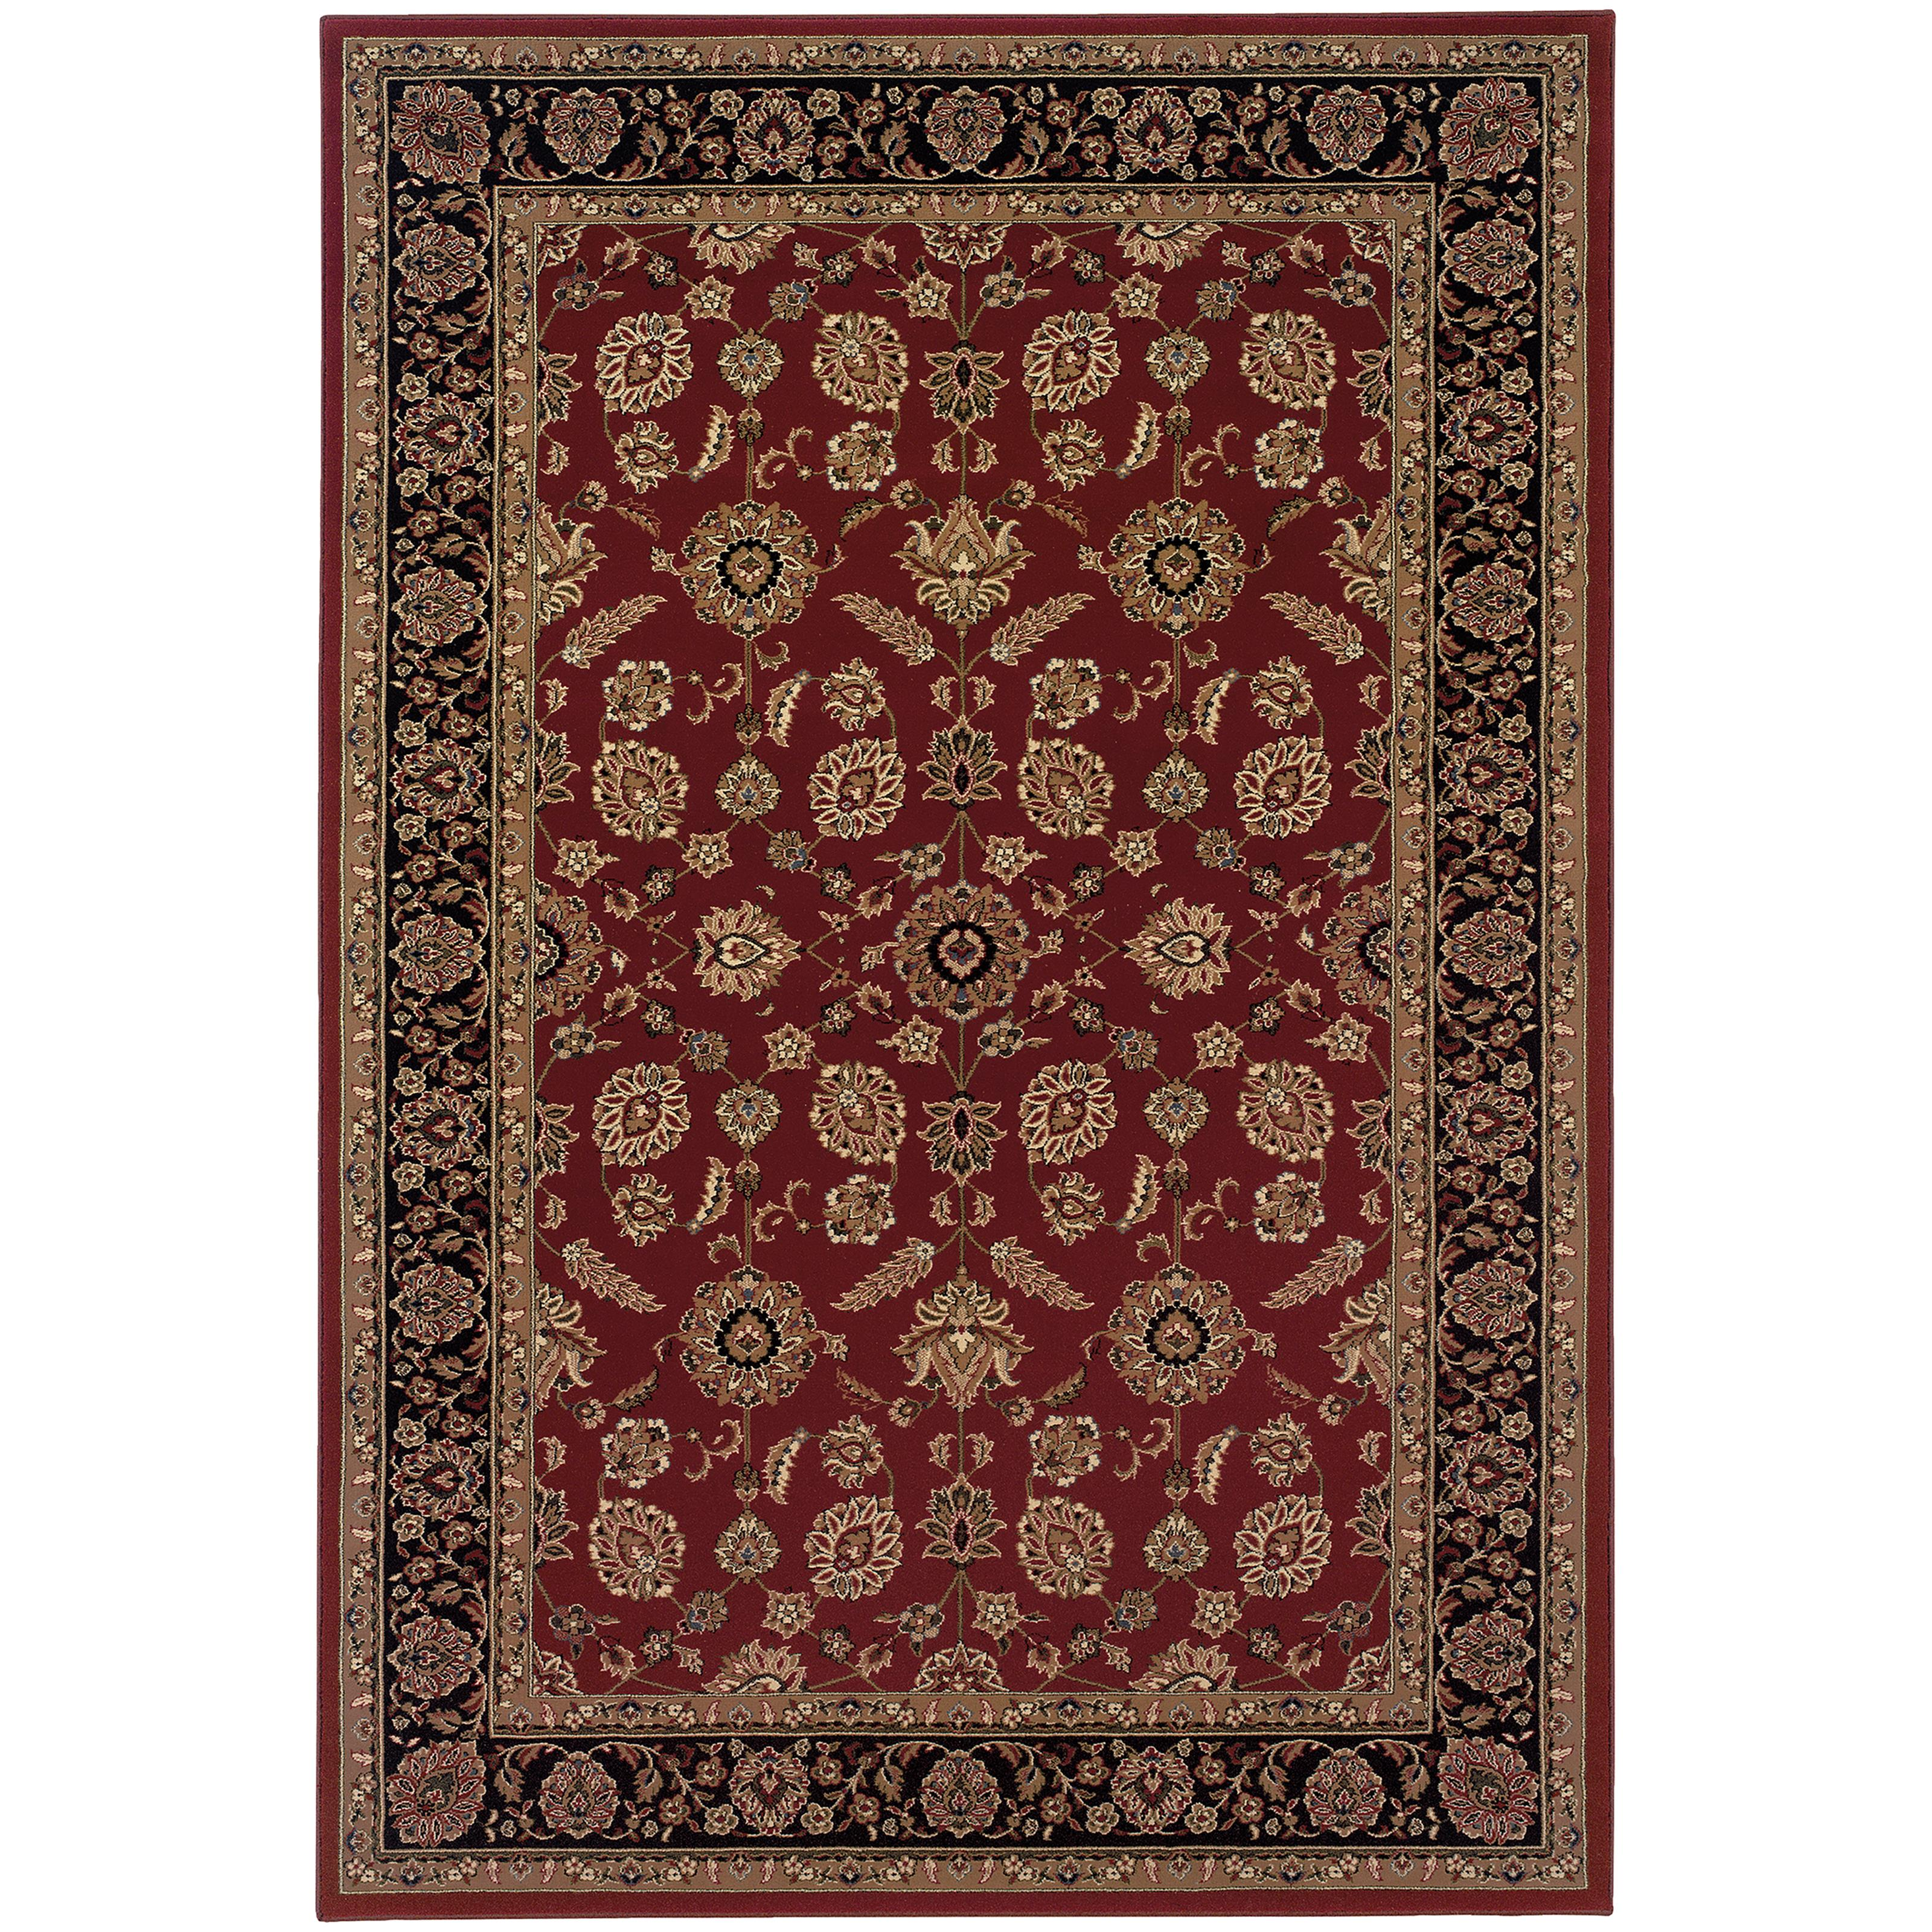 Oriental Weavers Ariana 12' X 15' Rug - Item Number: A271C3360450ST